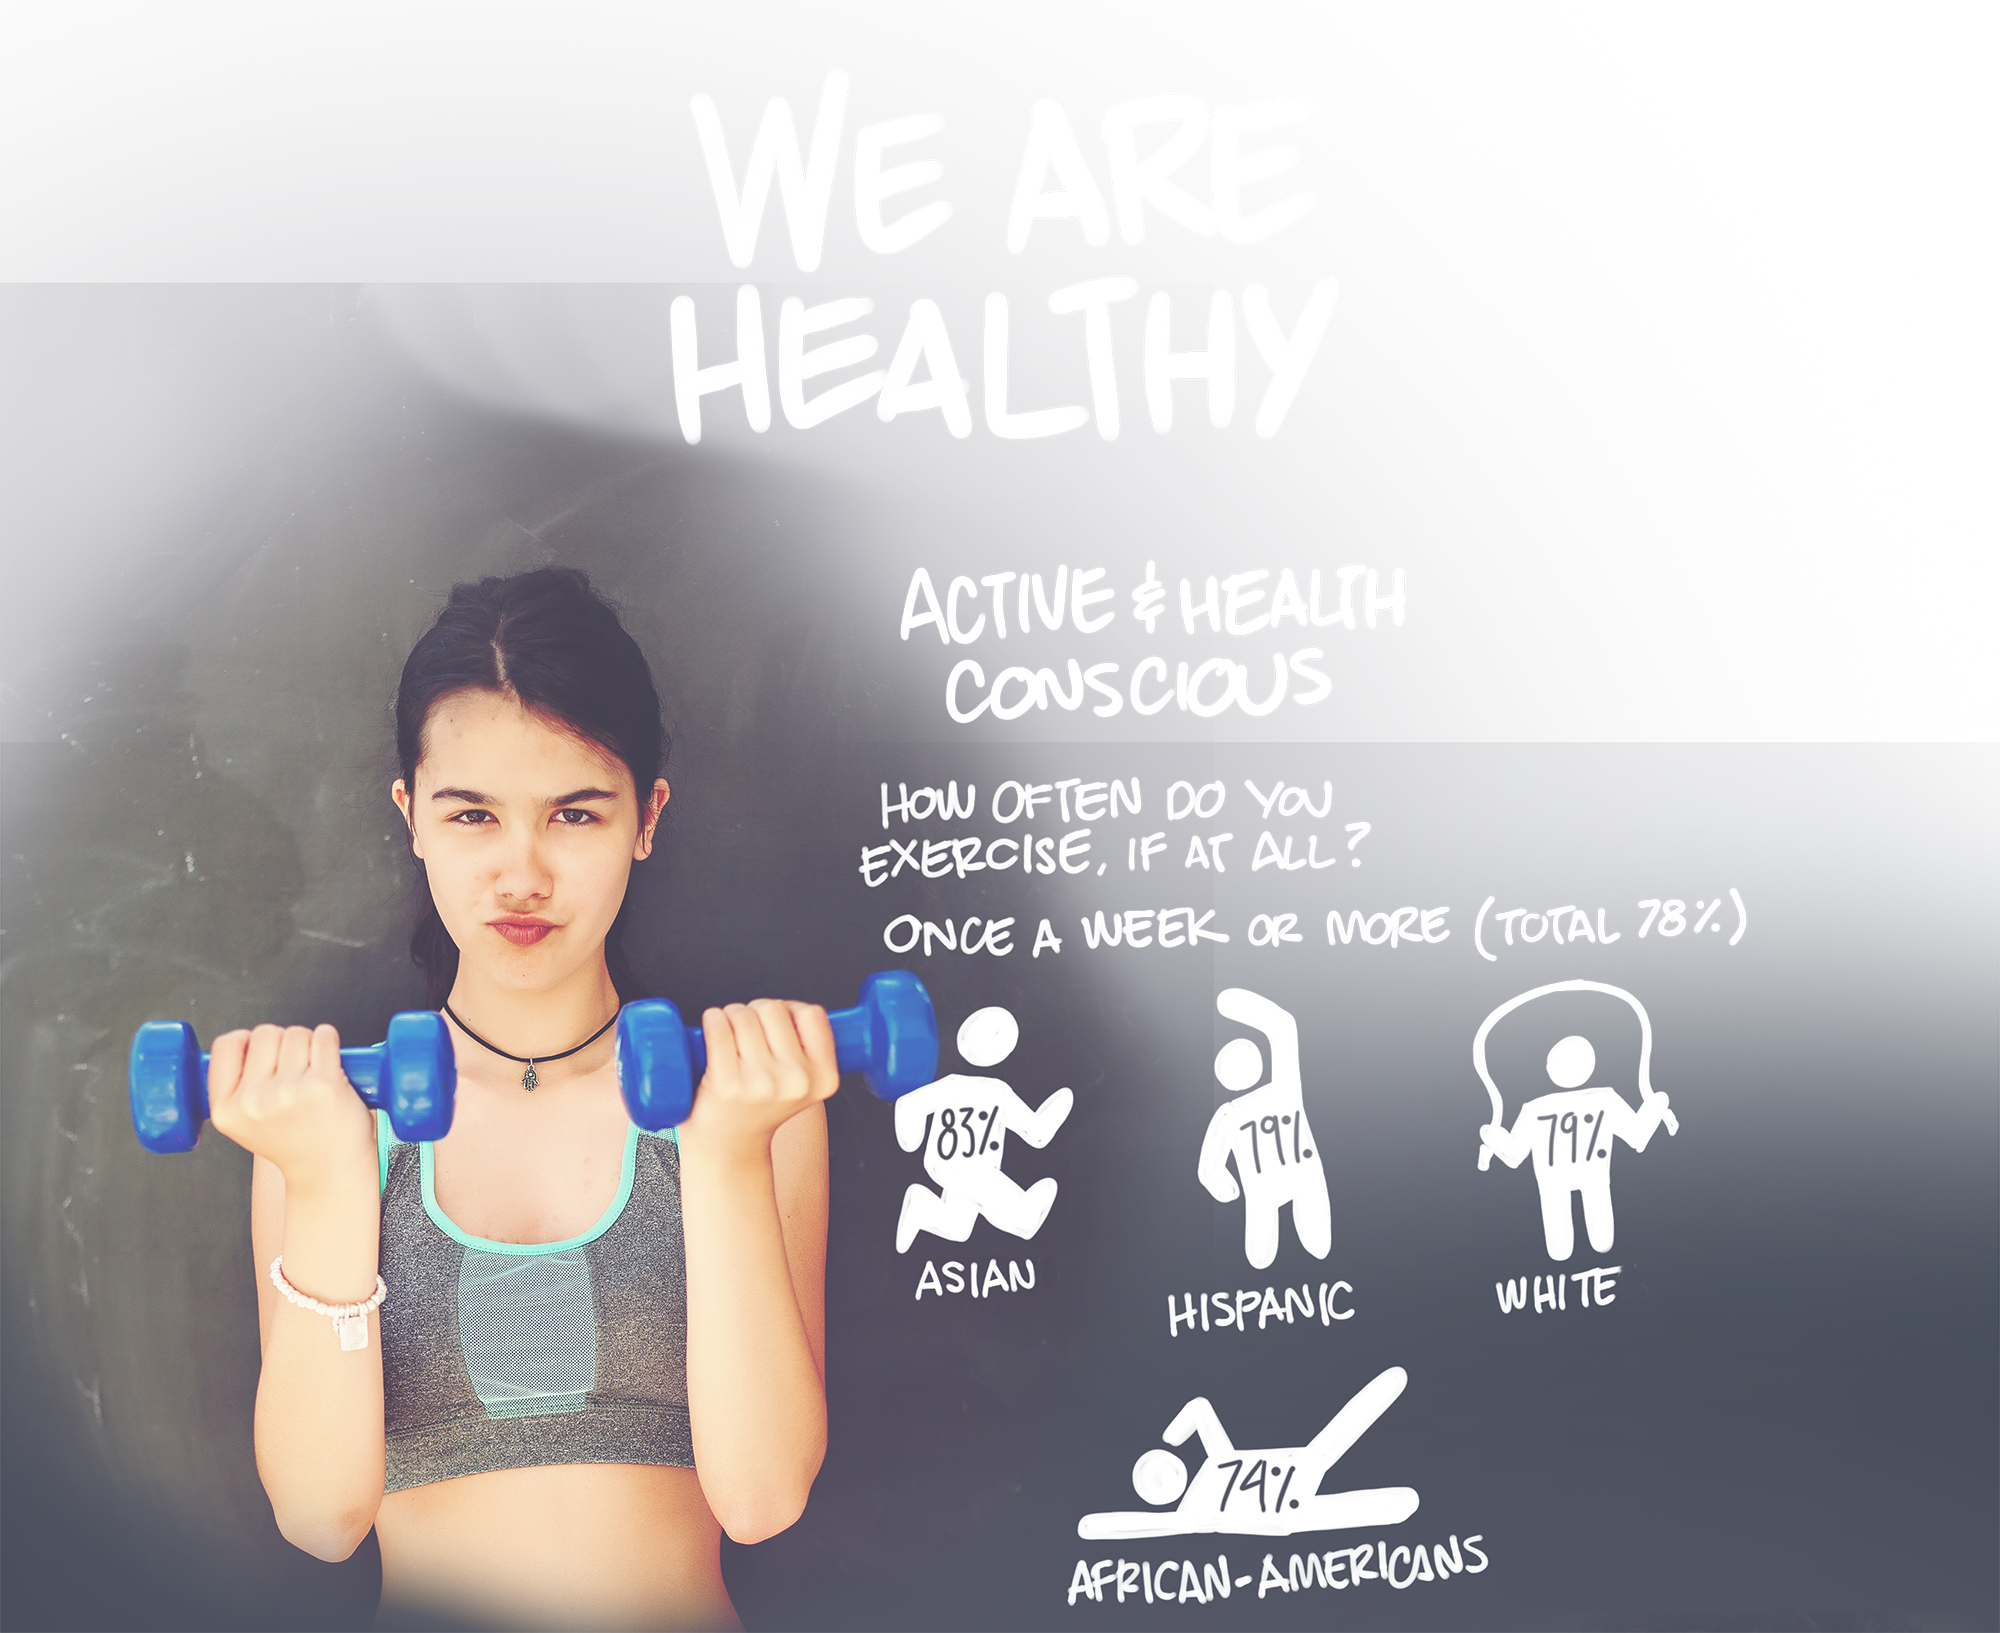 We are healthy! Active Health Conscious. How often do you exercise, if at all. Once a week or more (Total 78%). Asian - 83%, Hispanic - 79%, White - 79%, African Americans - 74%